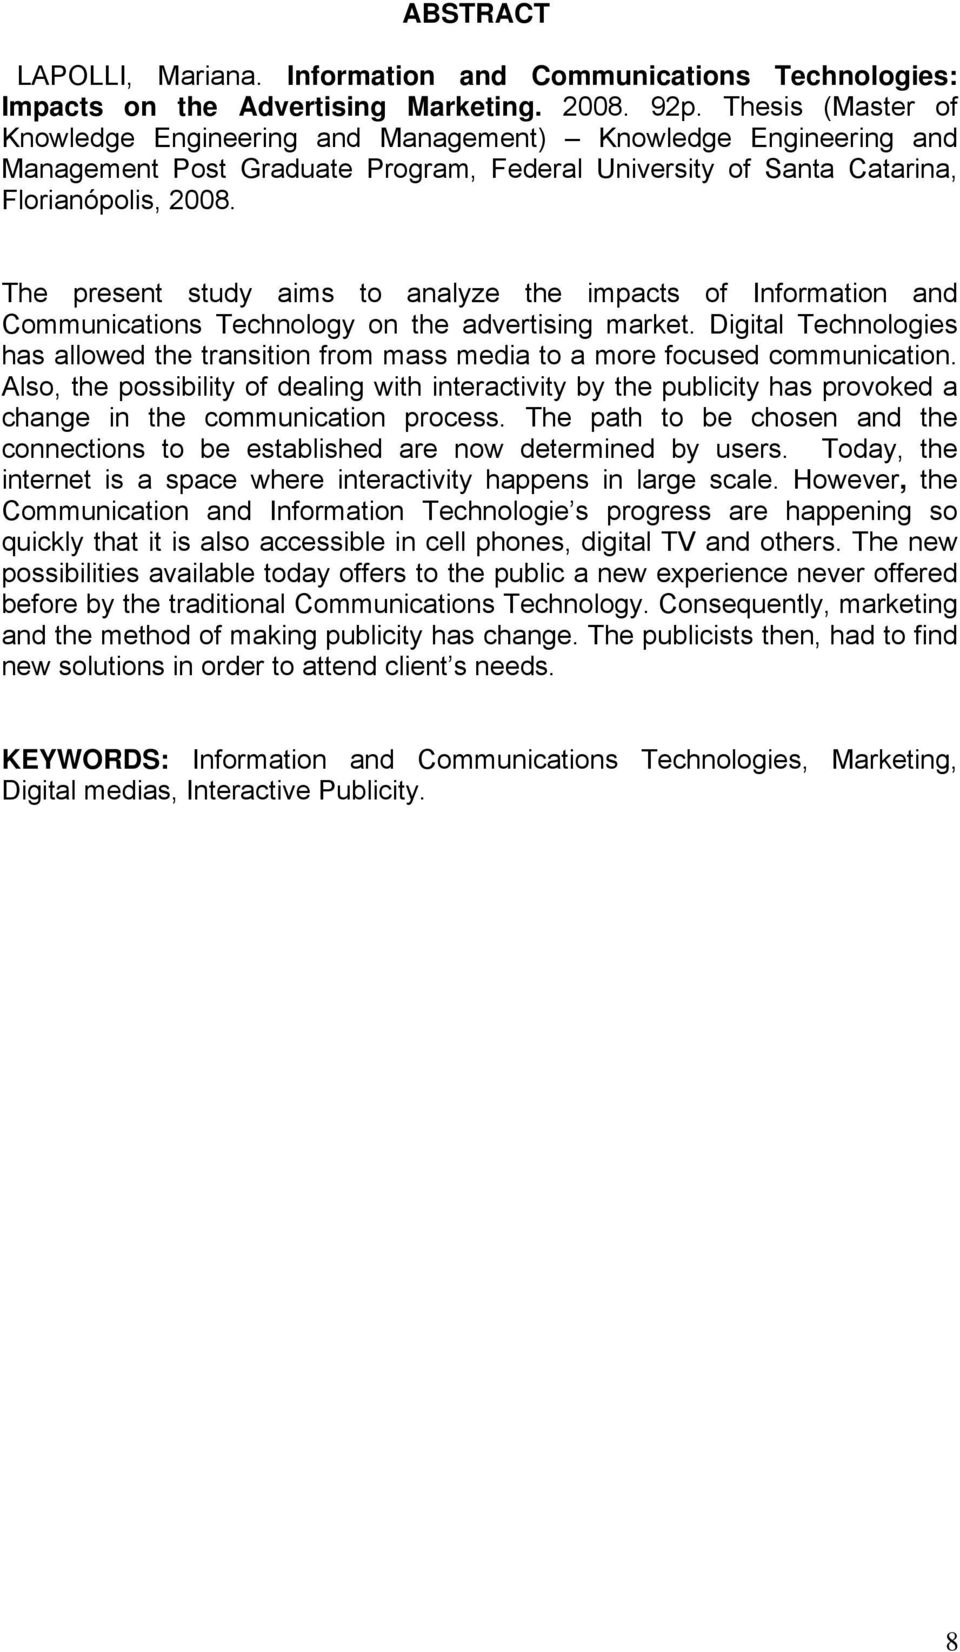 The present study aims to analyze the impacts of Information and Communications Technology on the advertising market.